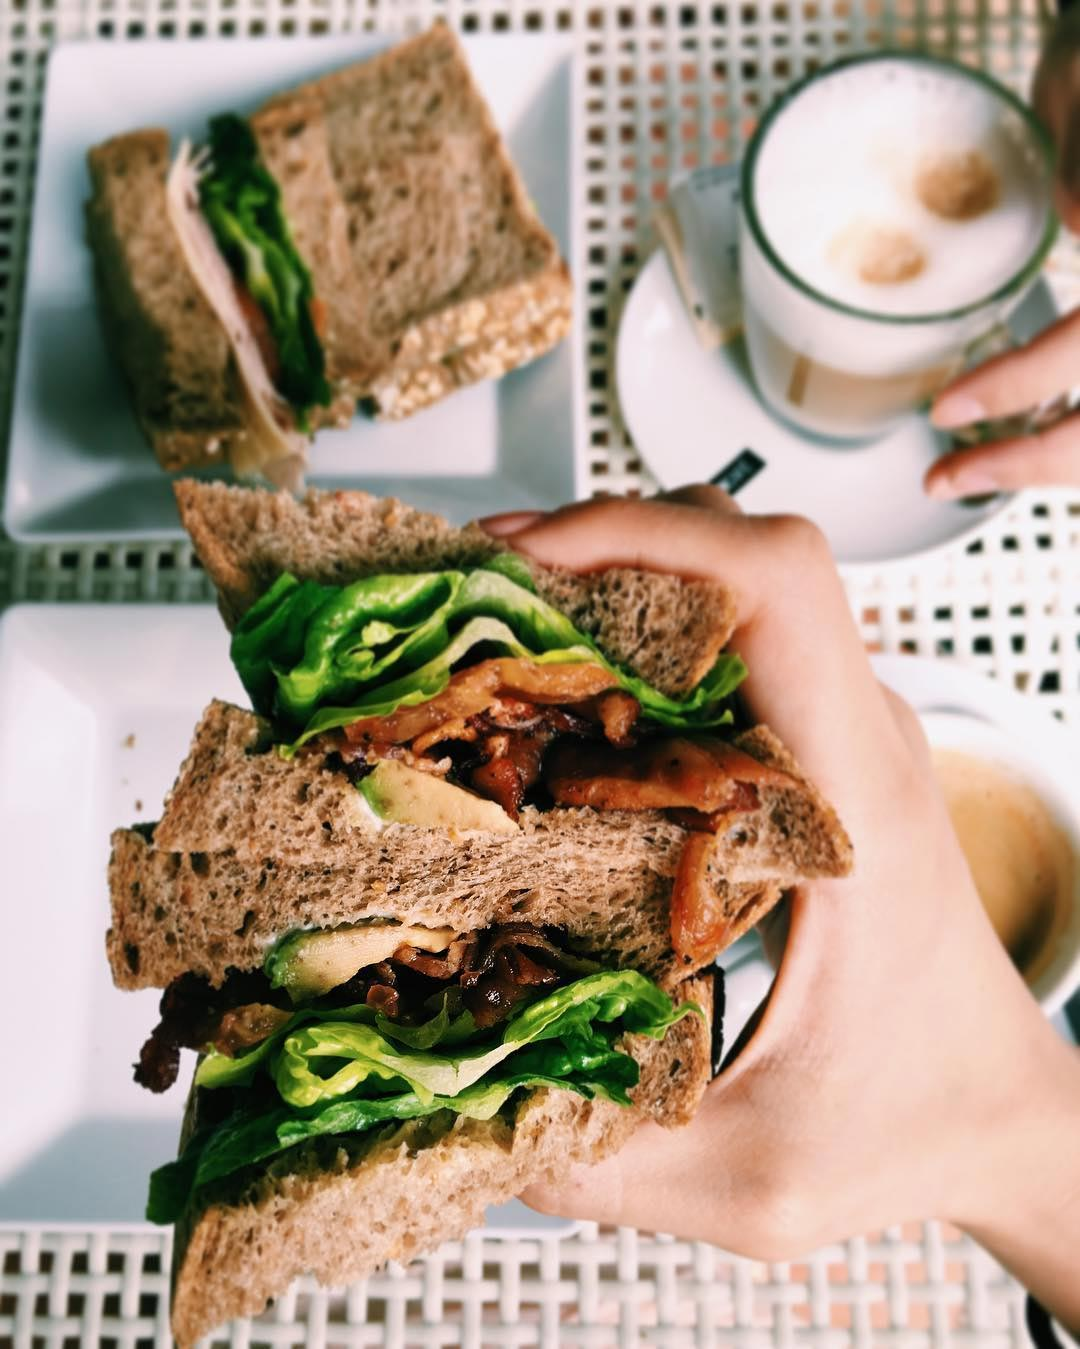 sandwiches freshly baked by le bijoux